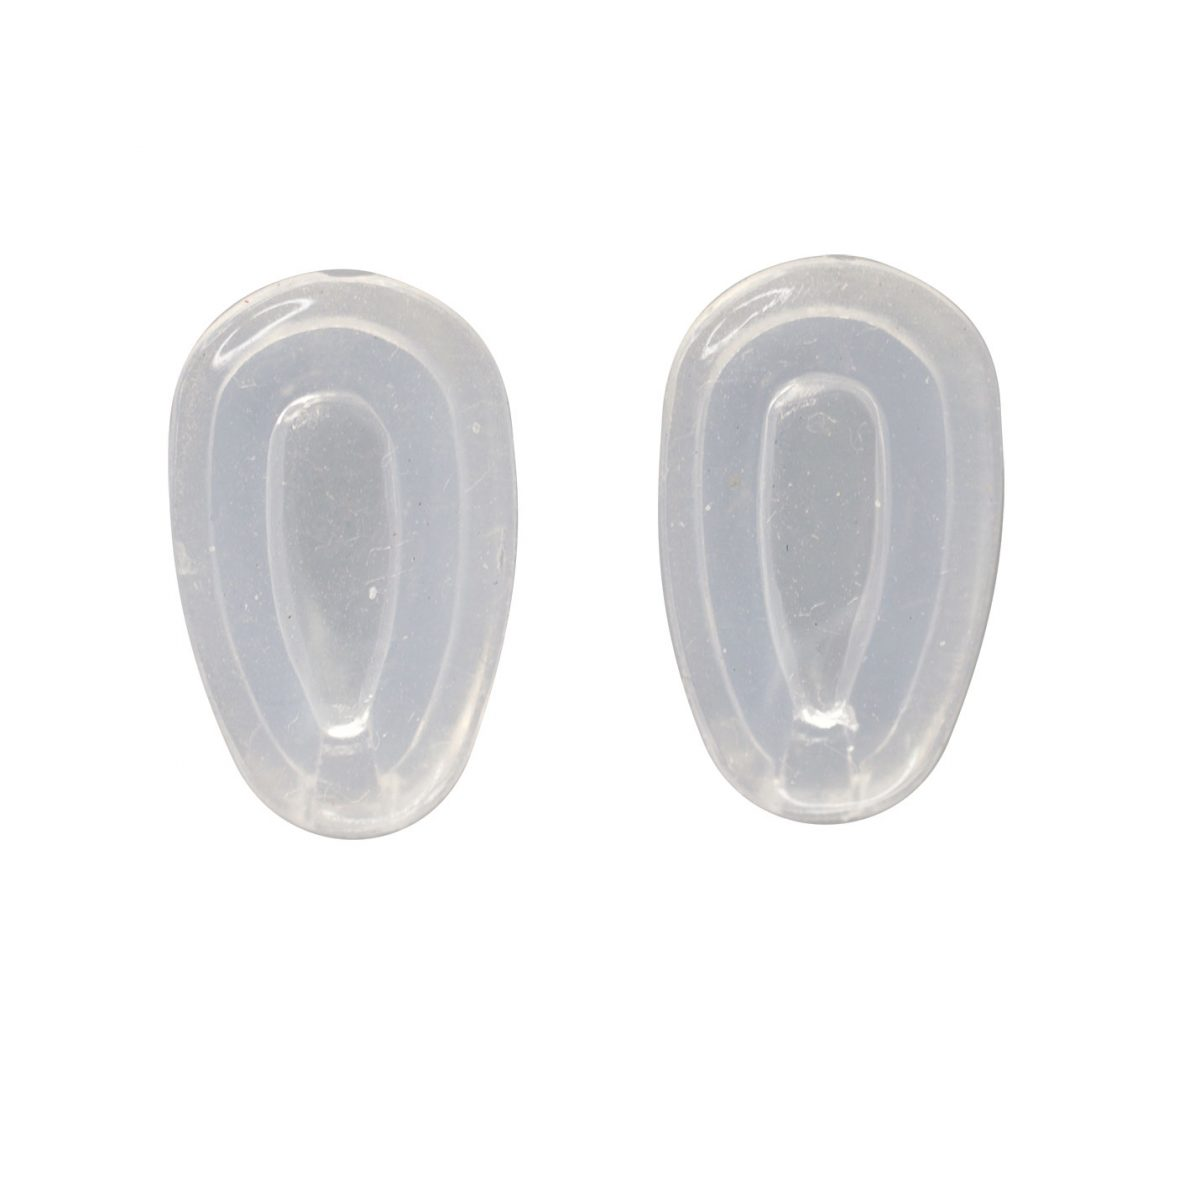 Mono Air Silicone Nose Pads